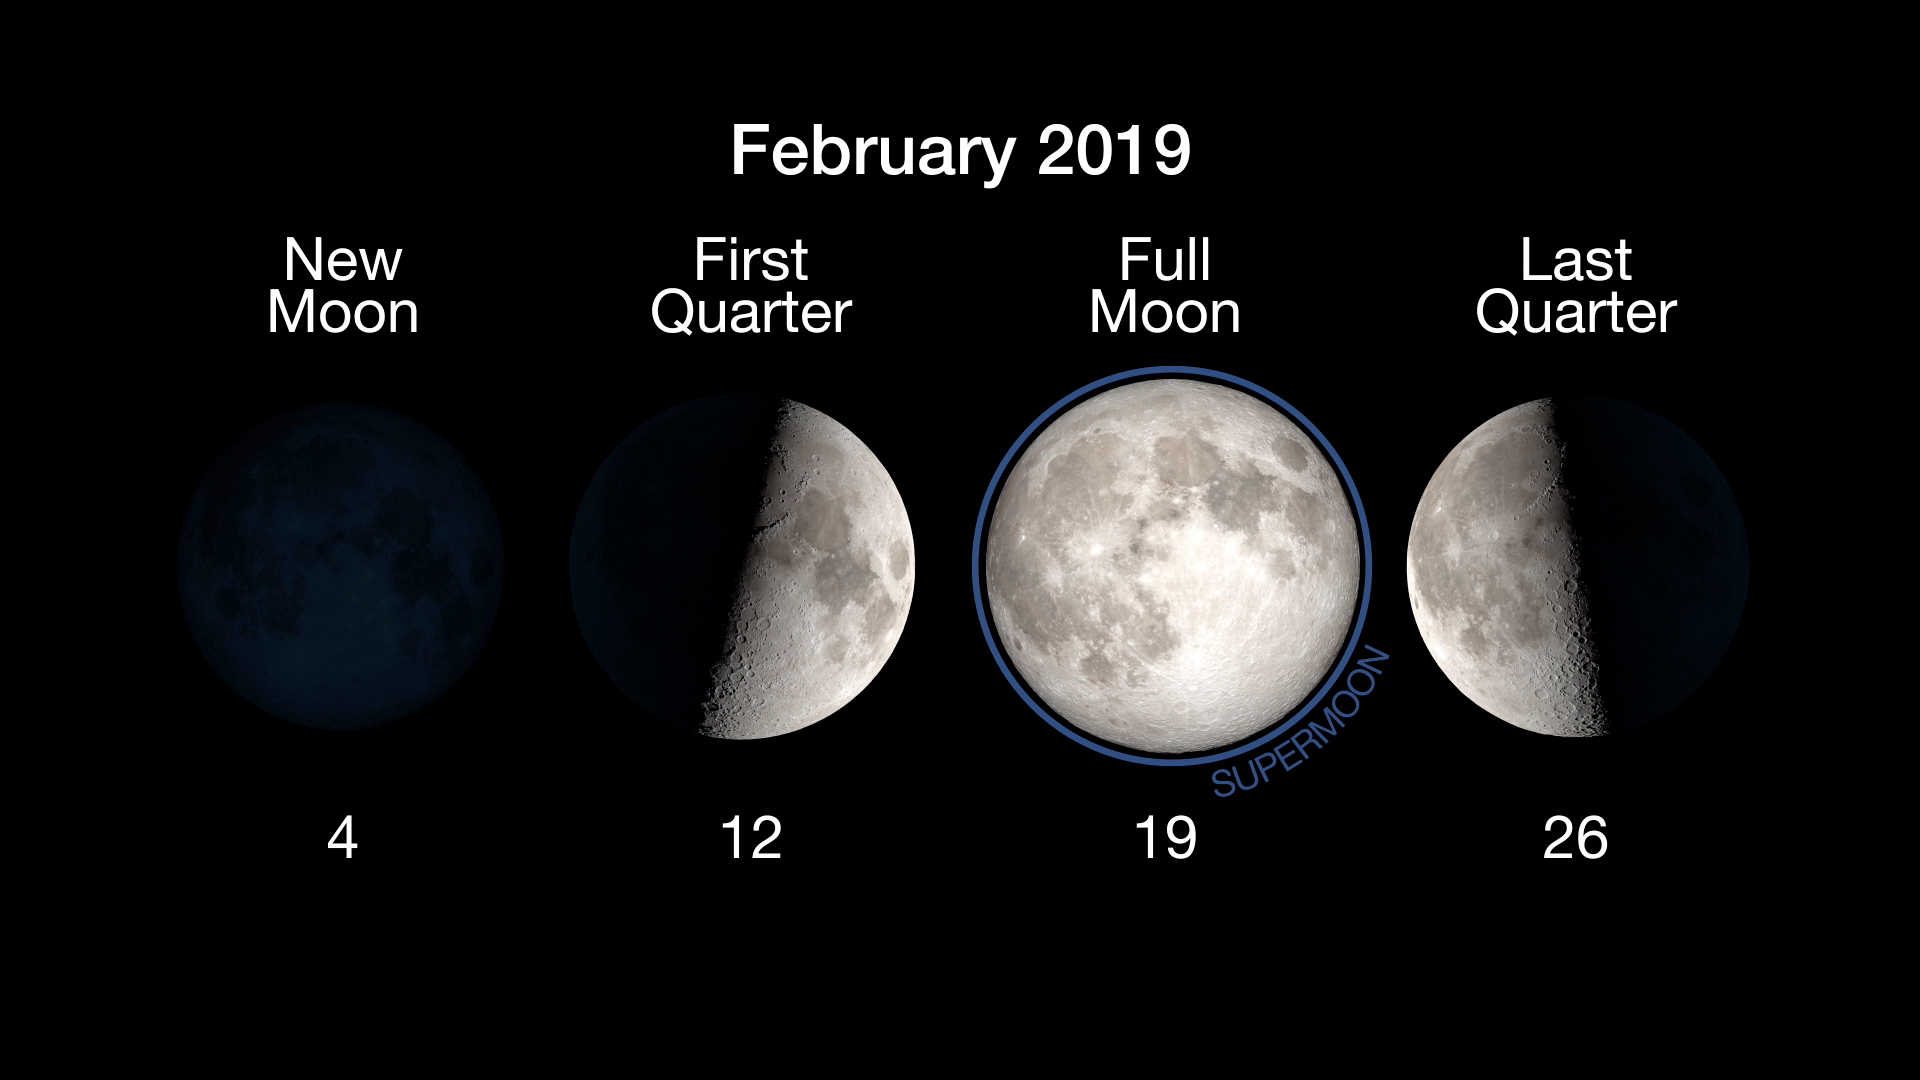 Moon Phases for February